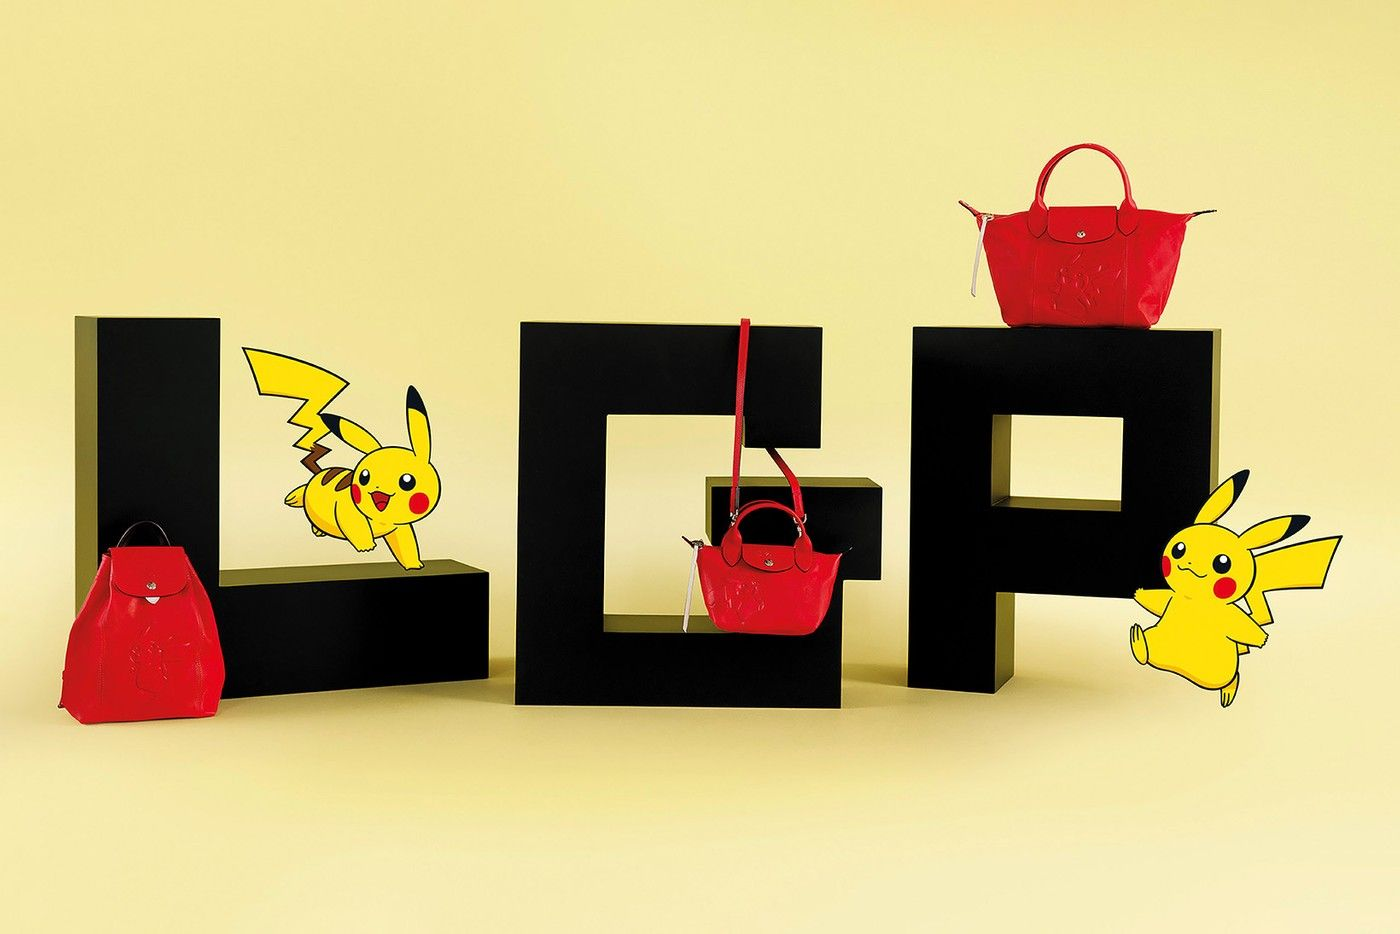 This Longchamp x Pokémon Collaboration, with Pikachu as its Mascot, is Absolutely Adorable